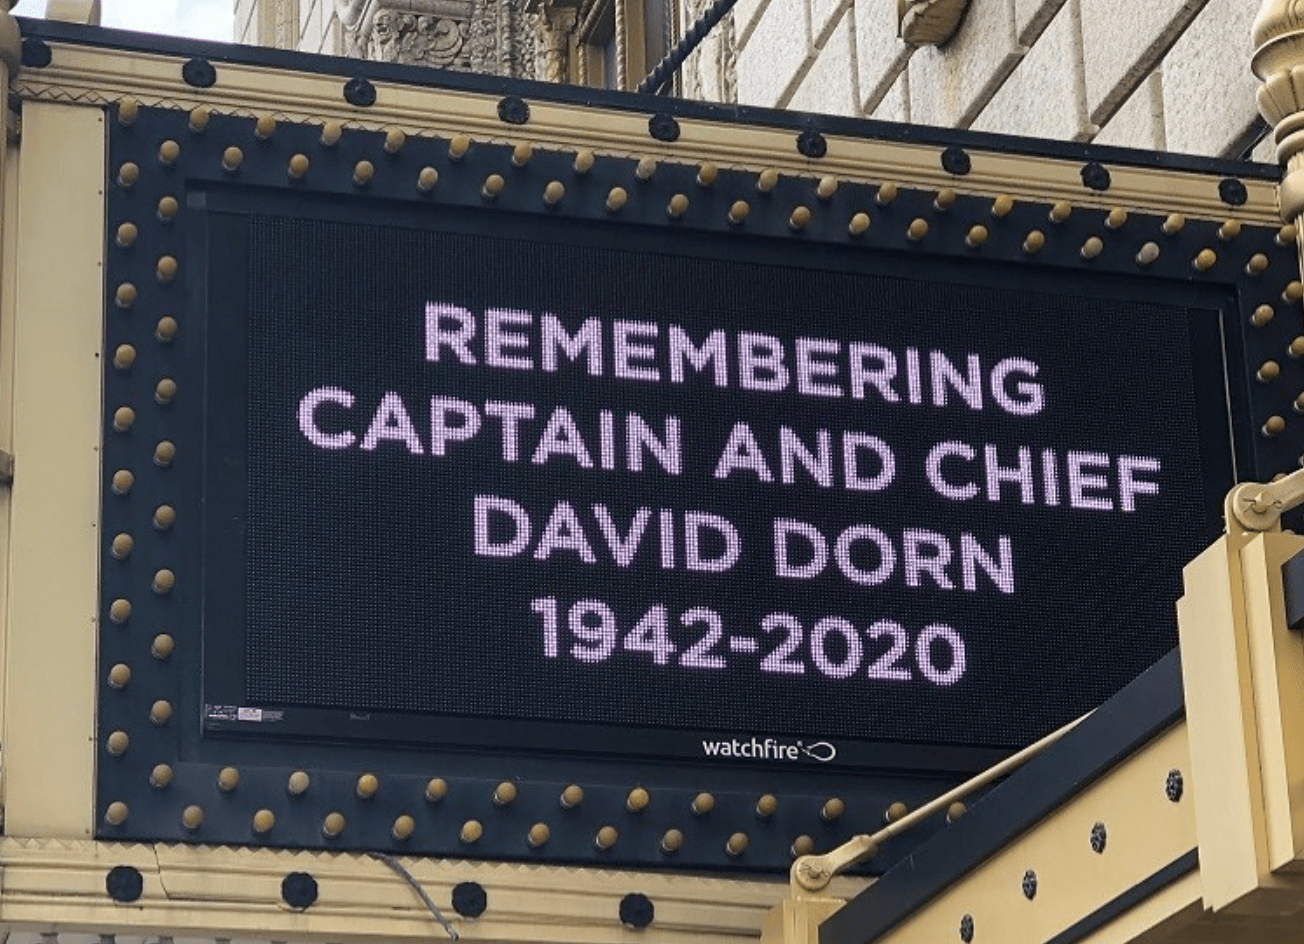 St. Louis Theater apologizes to the Black community after they celebrated a murdered, retired cop on their marquee (who was black).